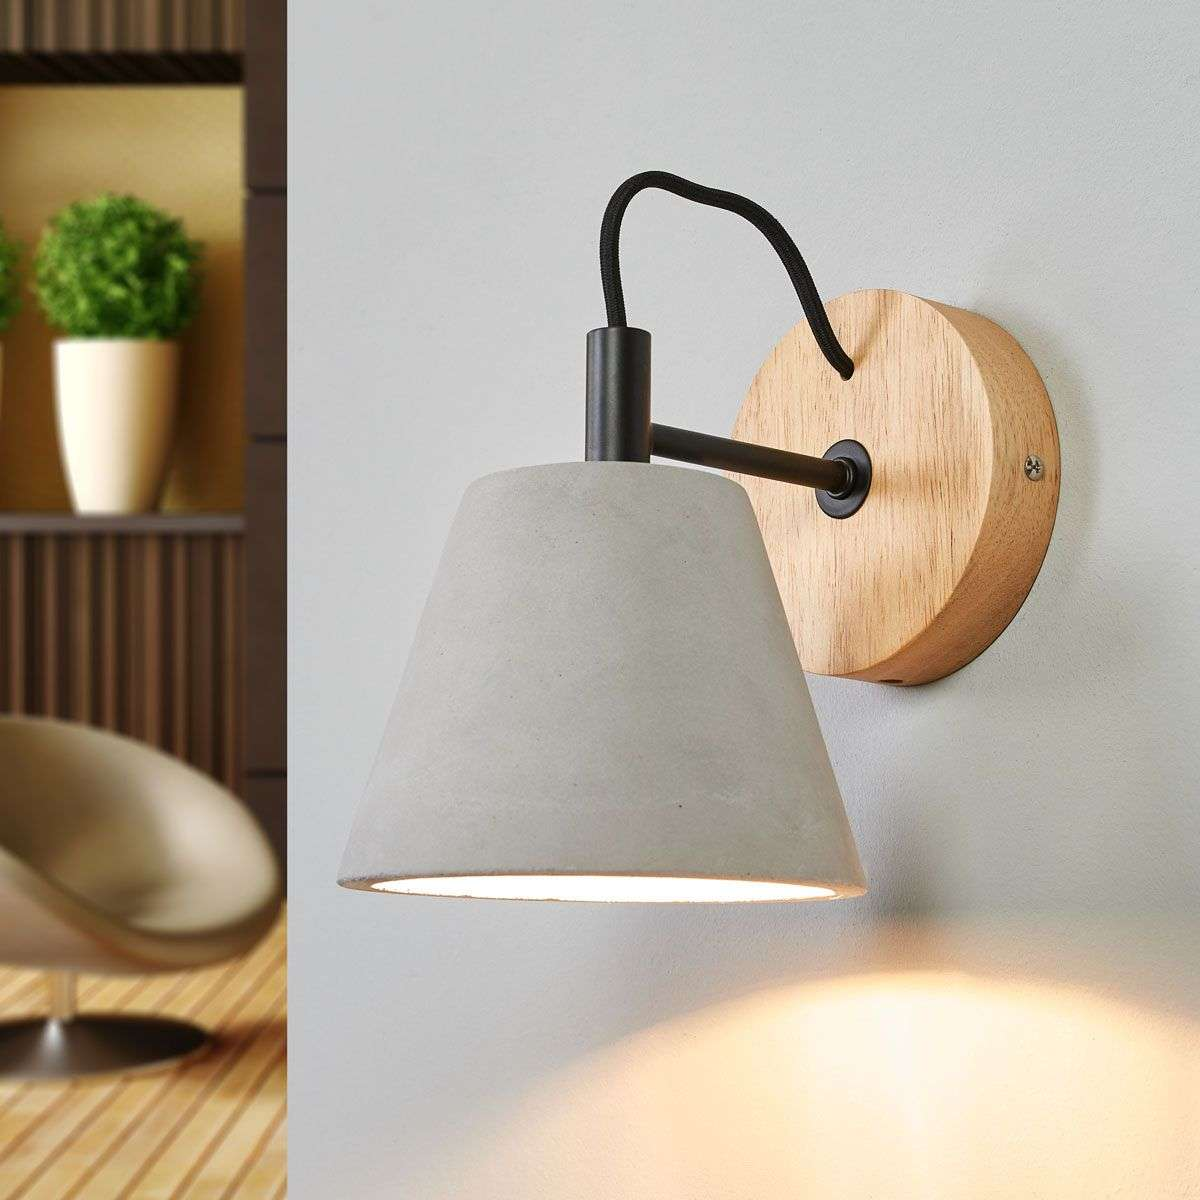 Possio wall light w concrete lampshade and wood lights possio wall light w concrete lampshade and wood 6055259 31 aloadofball Gallery